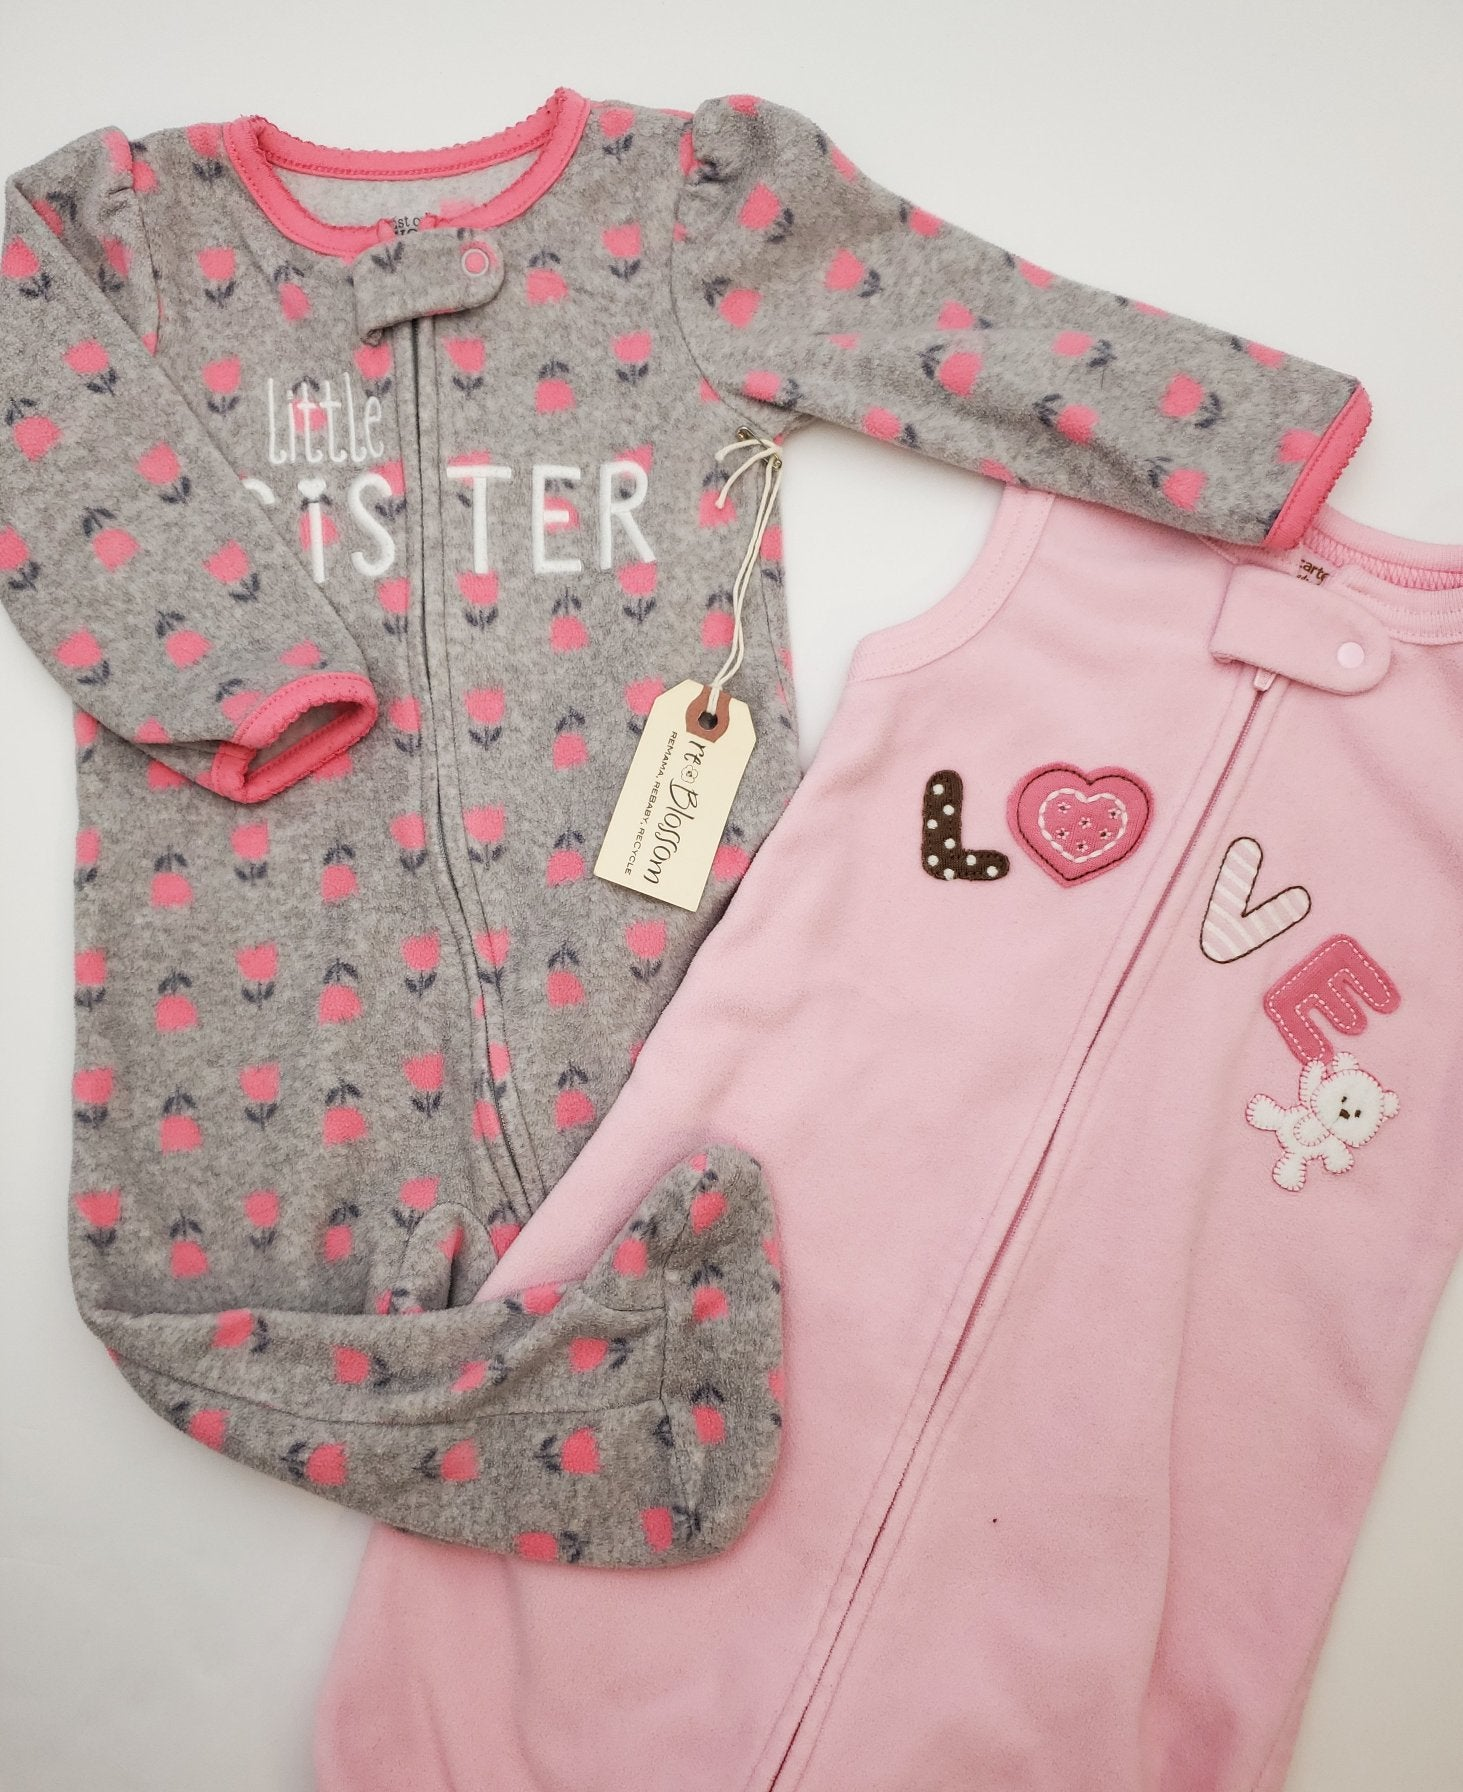 Resale 0-9 m Carters Love Pink Fleece Sleep Sack & 9 m Little Sister Footed Pajama 2pc Set